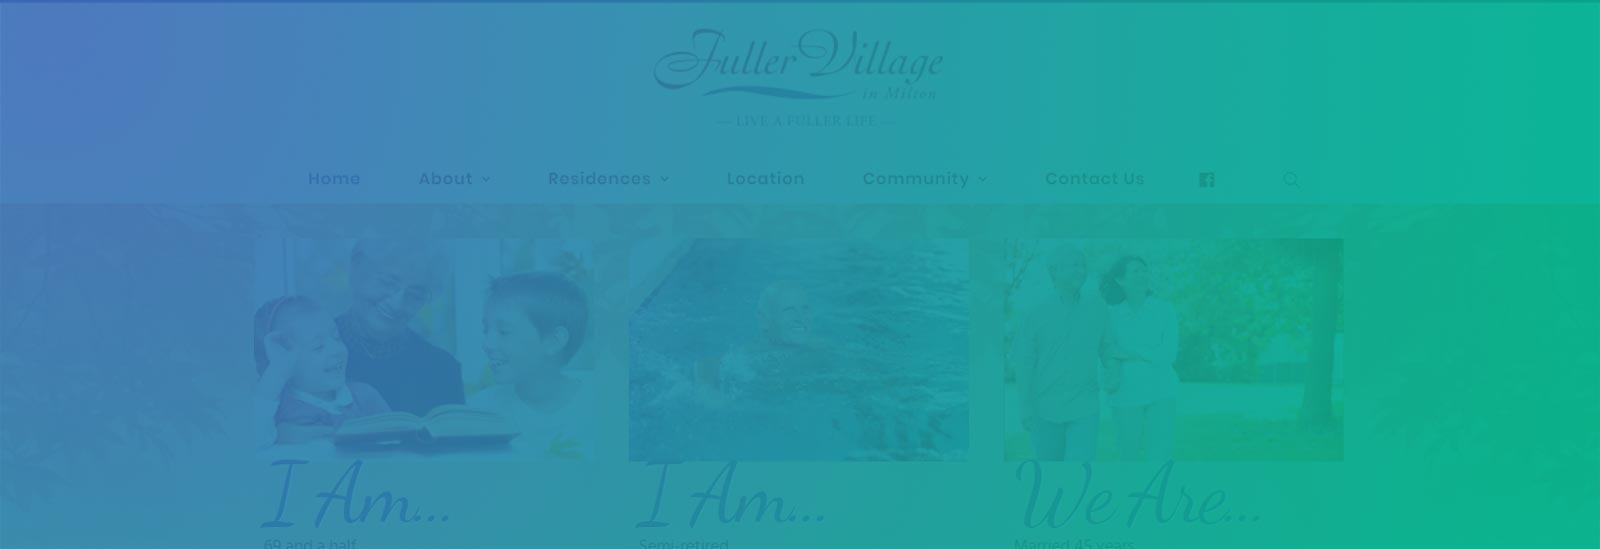 New Independent Living Community Website Launched for Fuller Village